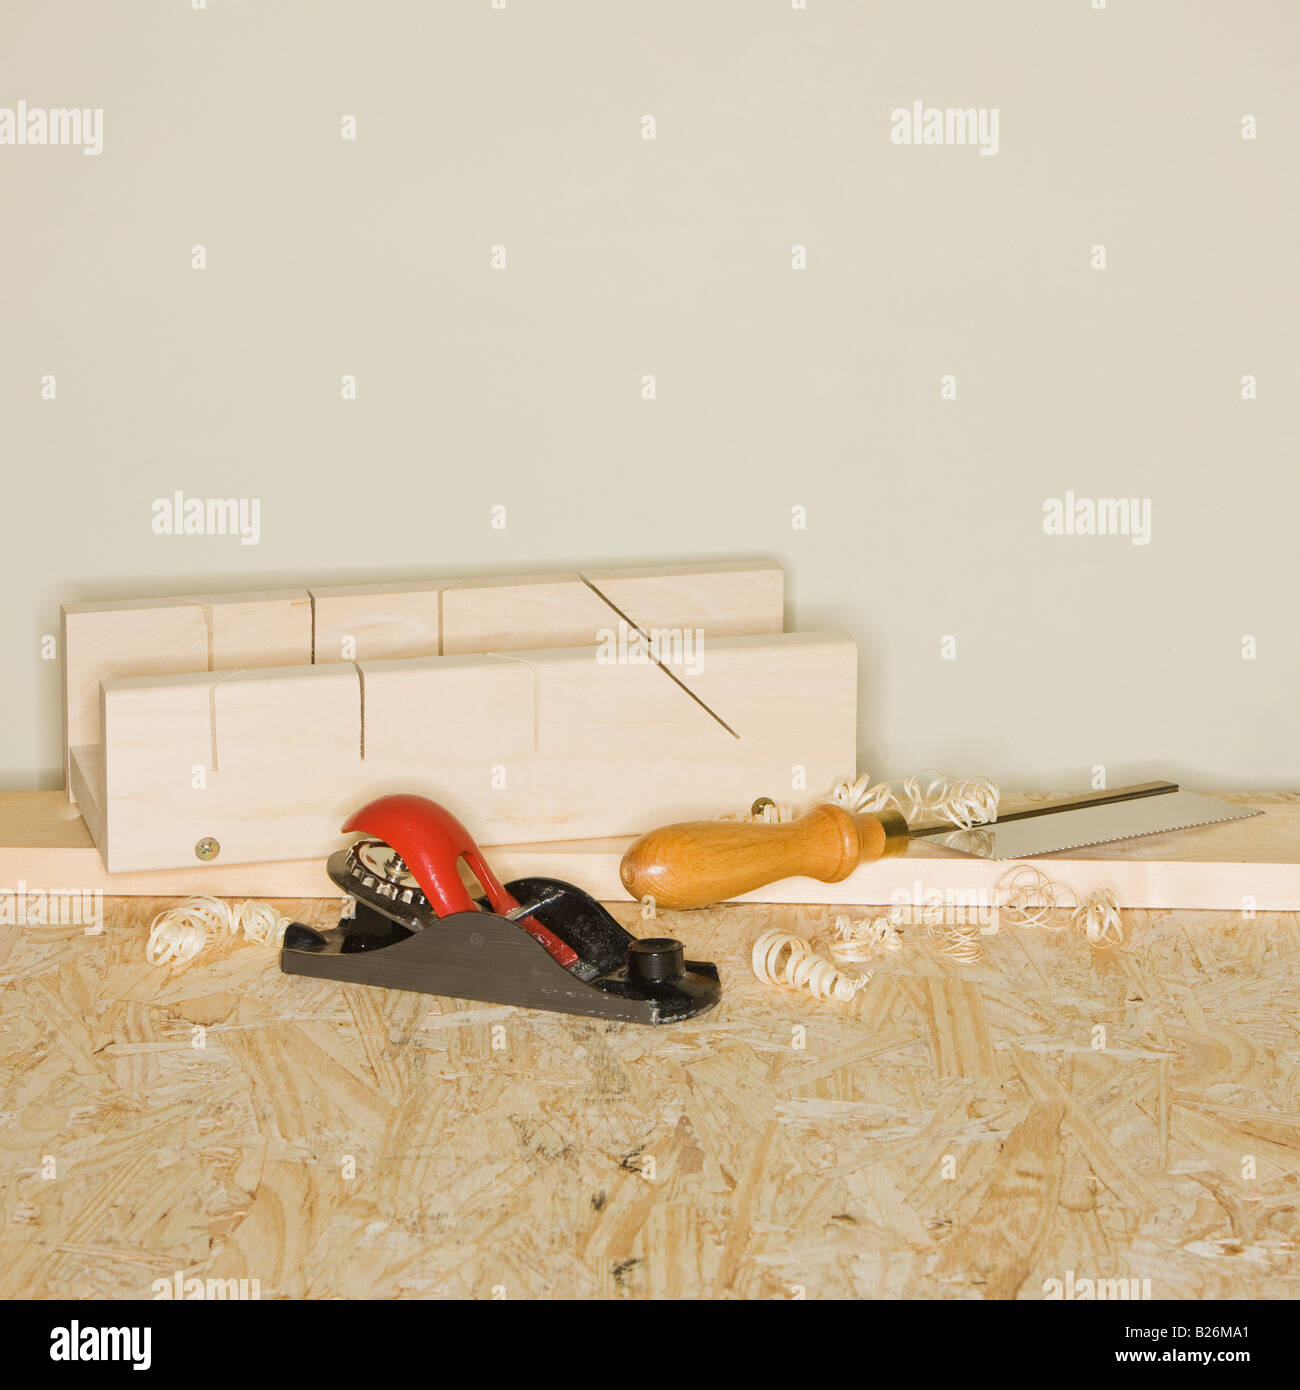 Woodworking plane and awl next to wood blocks - Stock Image